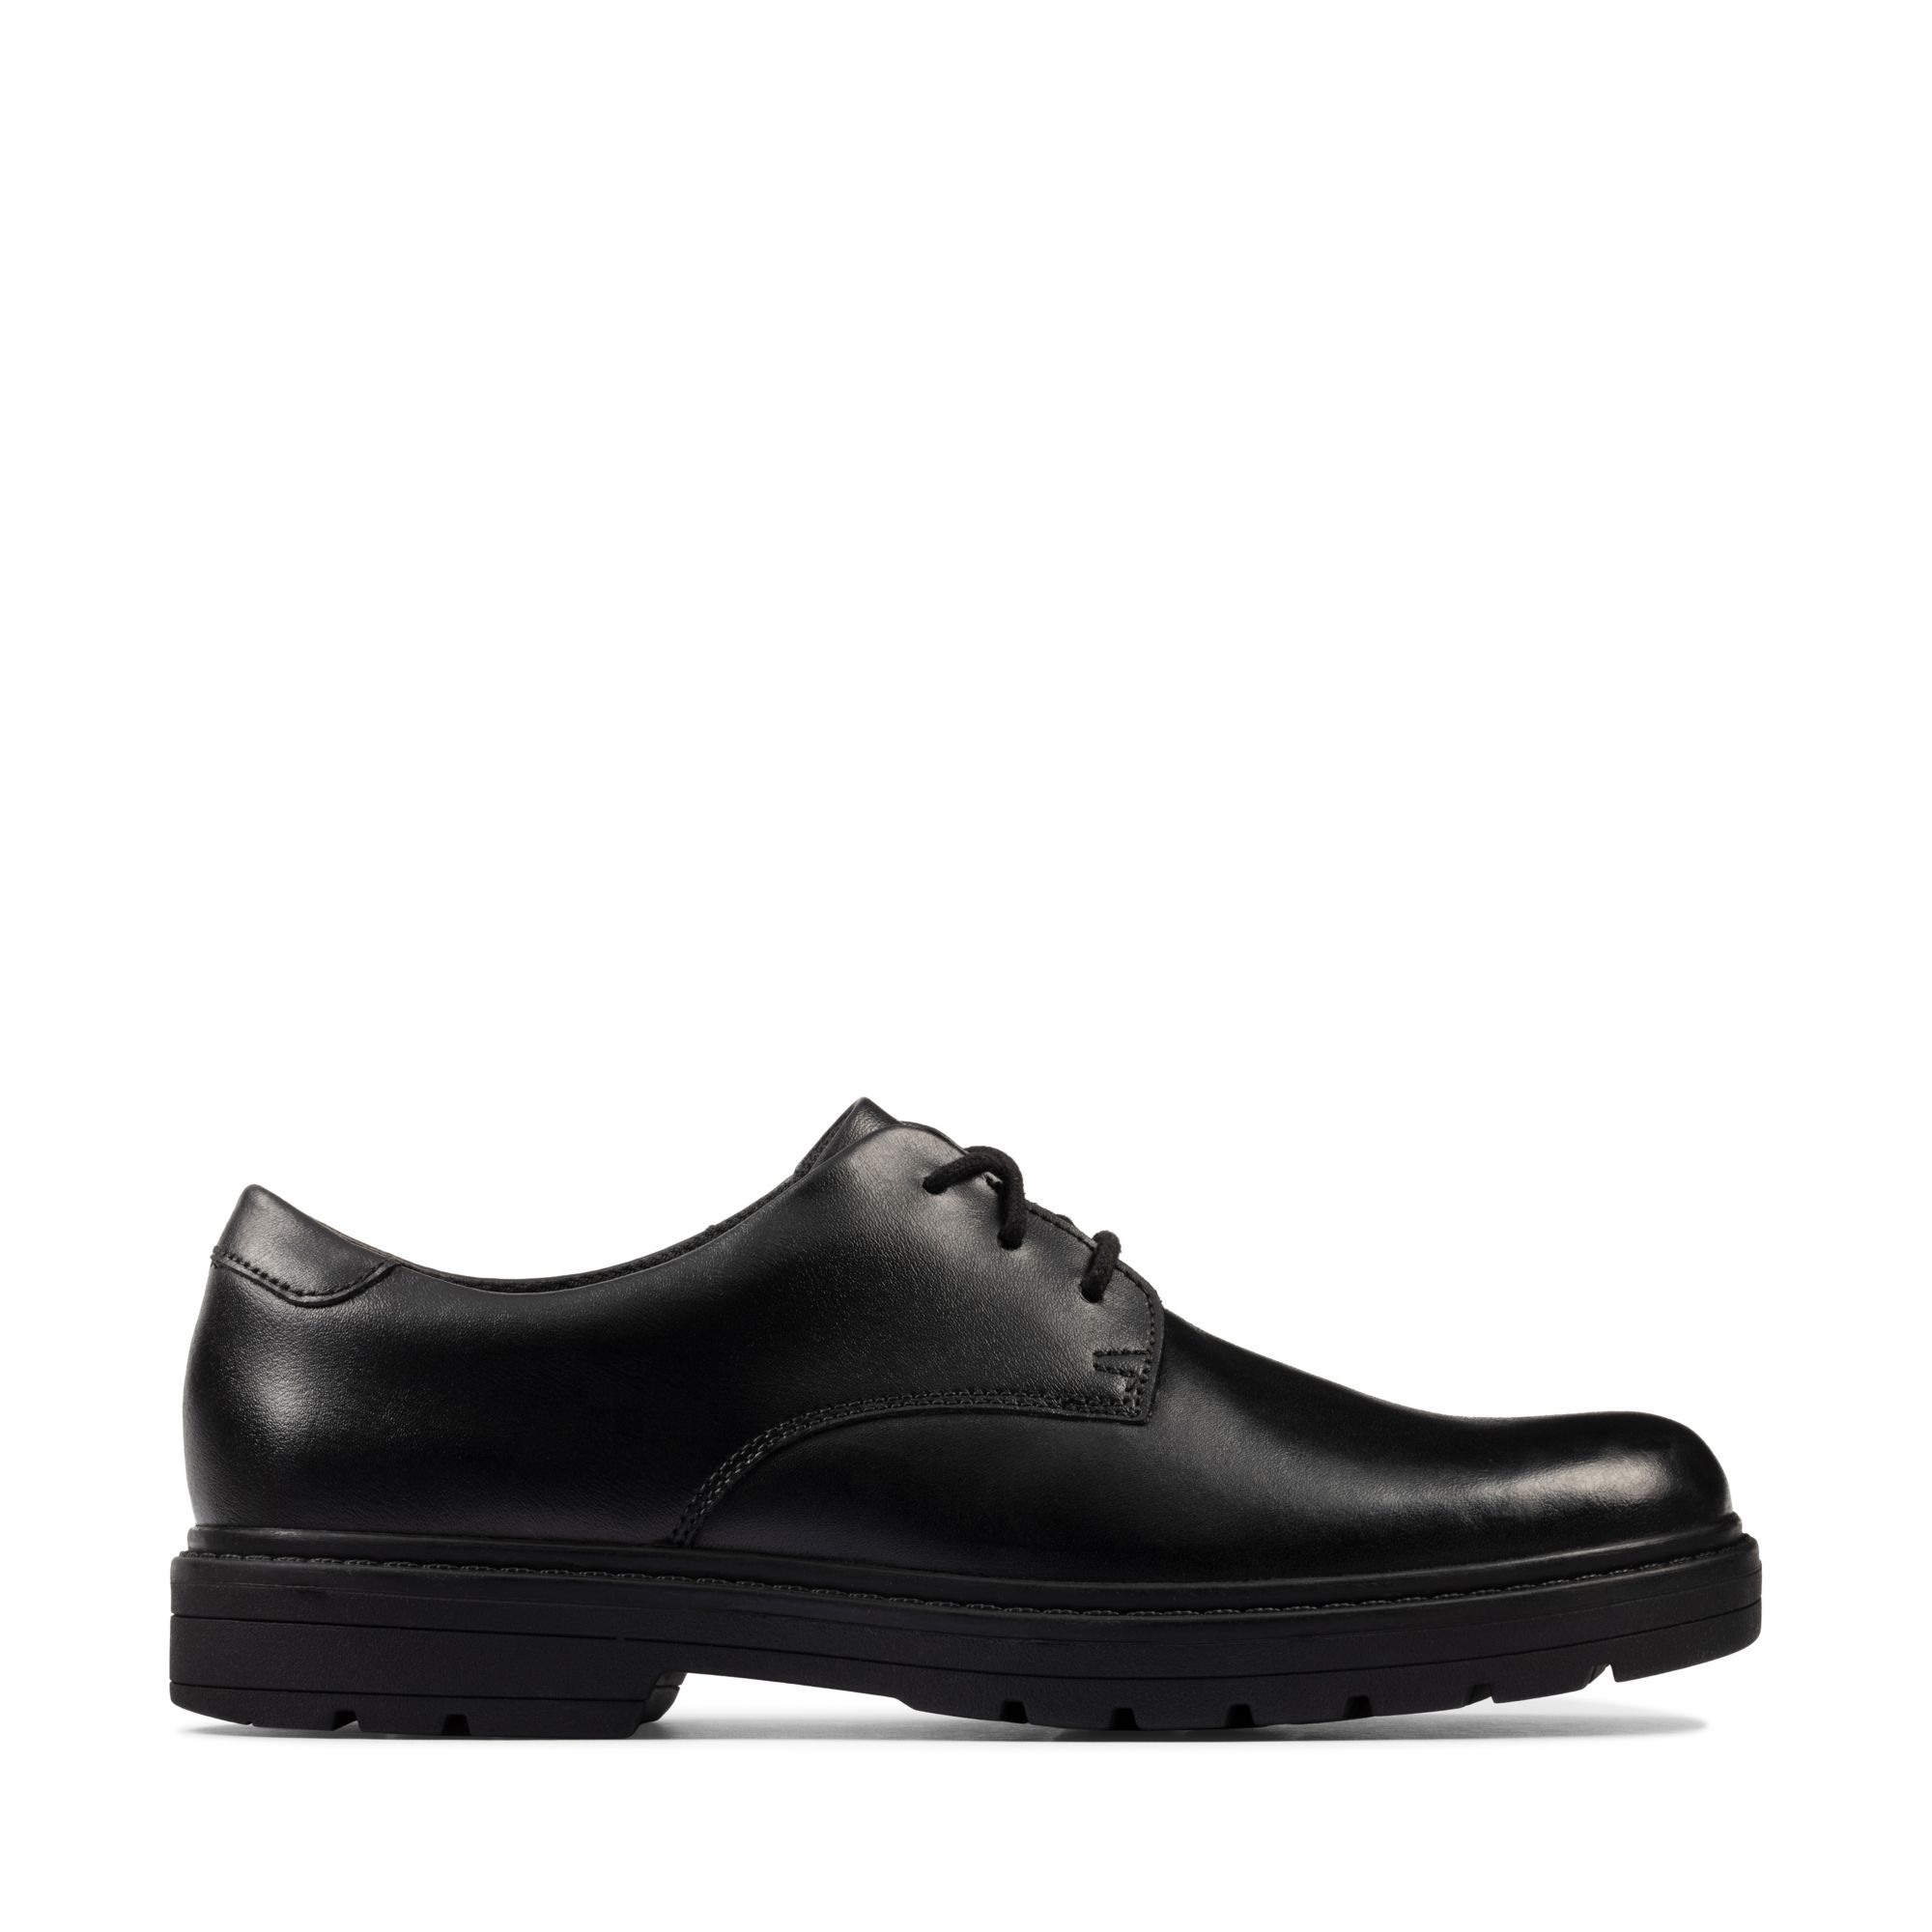 Clarks Loxham Derby Youth – Leather